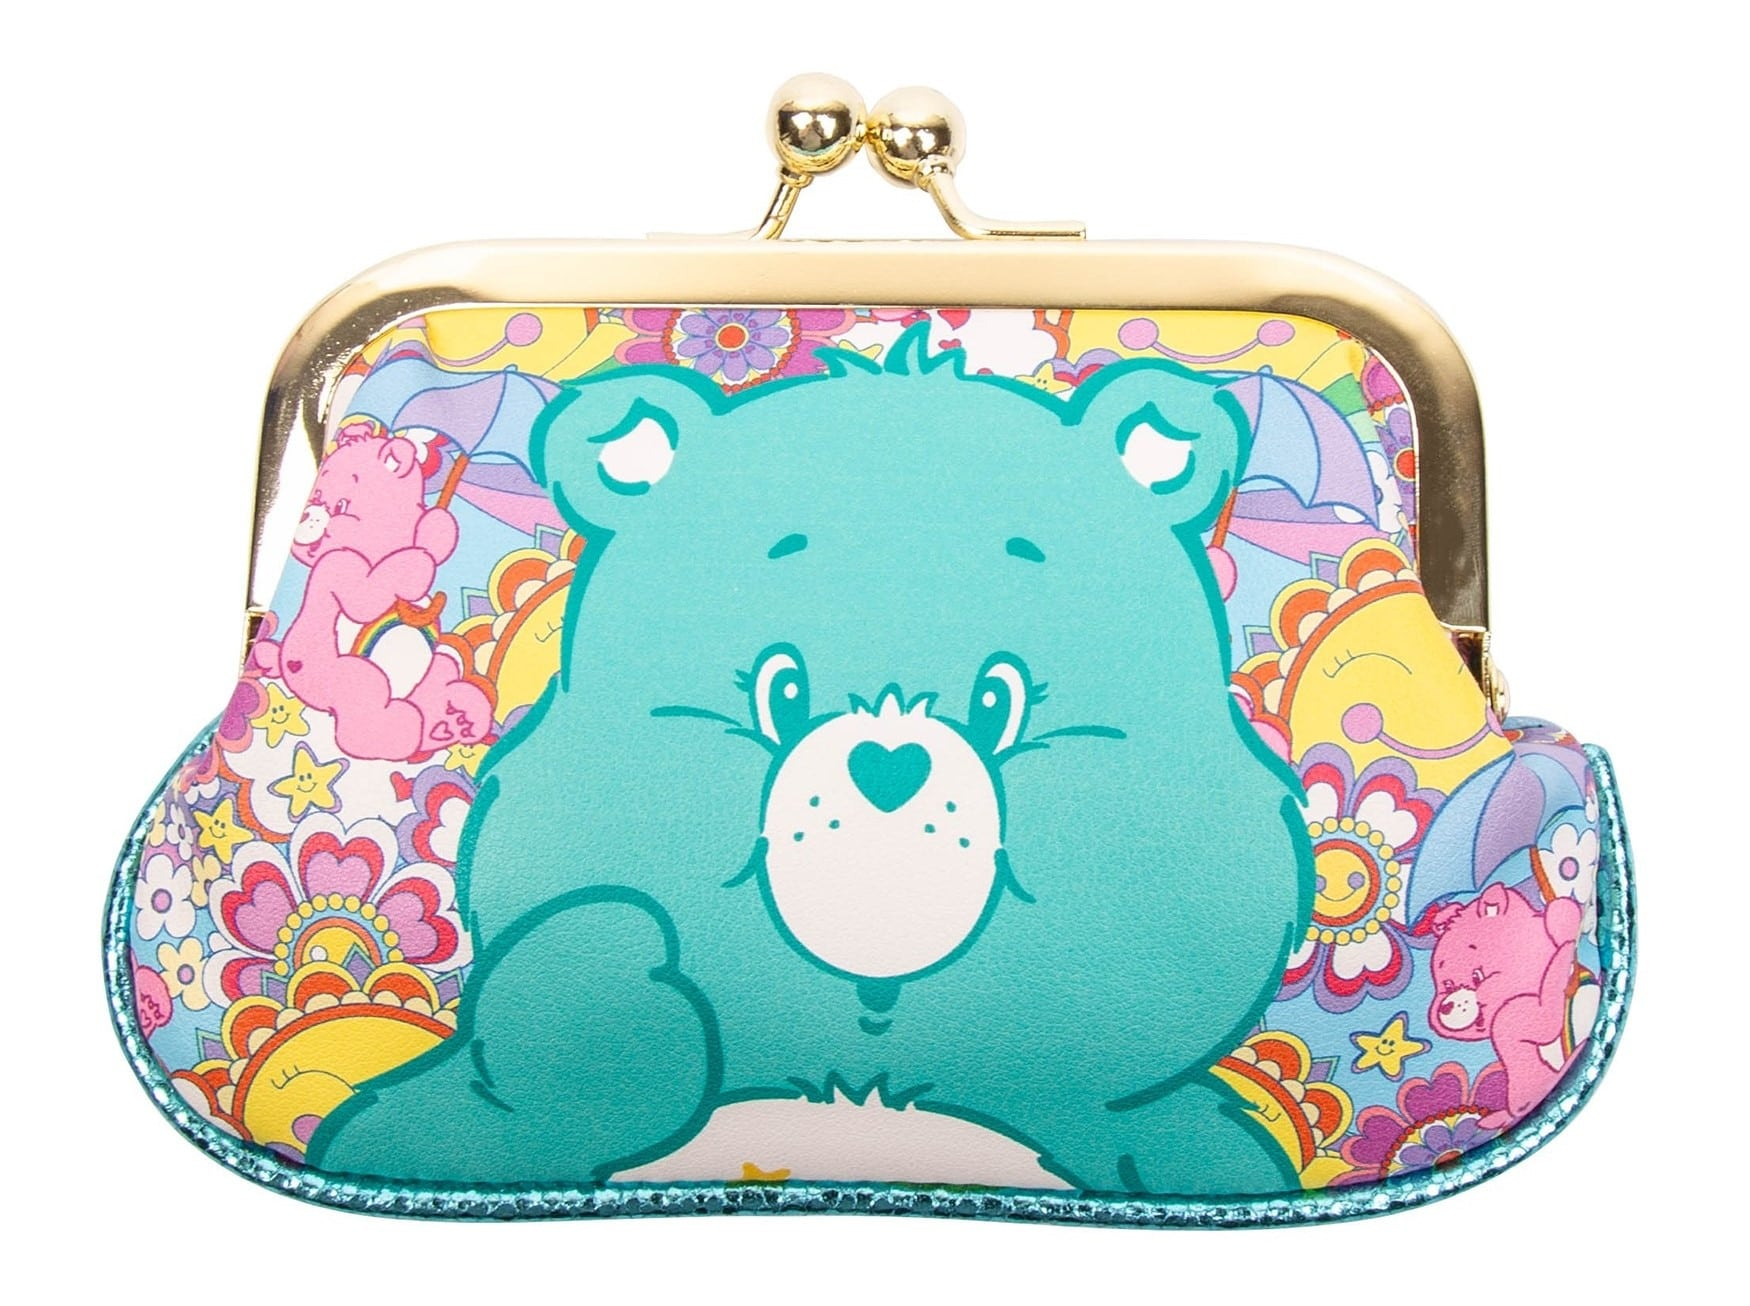 Irregular Choice Care Bears collection includes outrageous furry shoes 24